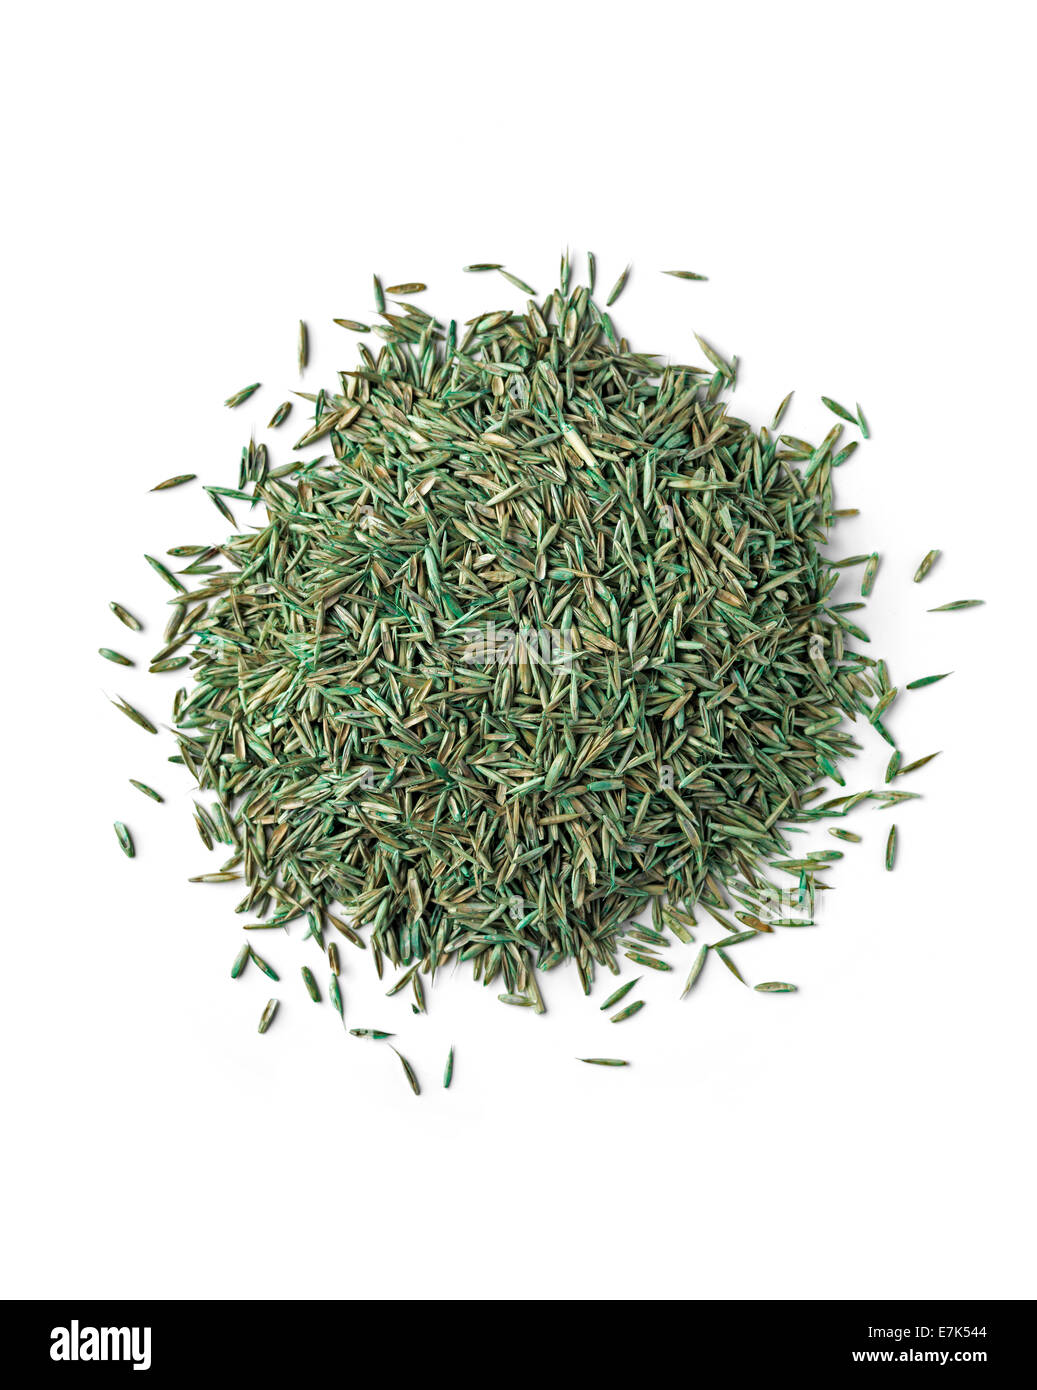 Grass Seed isolated on white - Stock Image